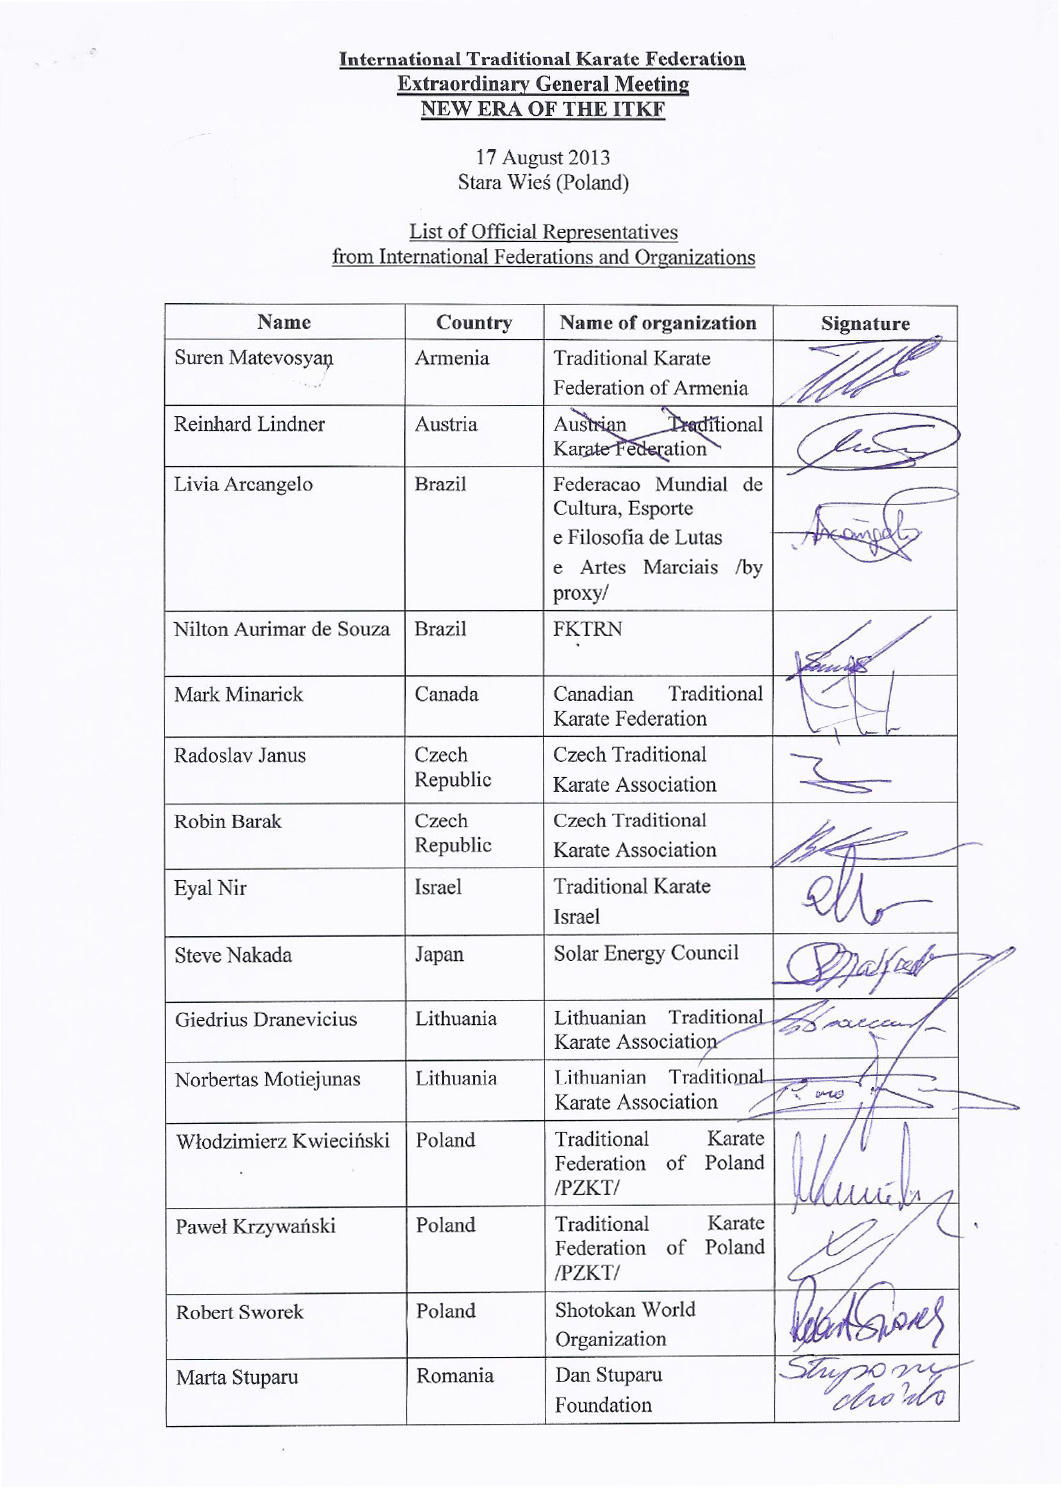 List of Official Representatives